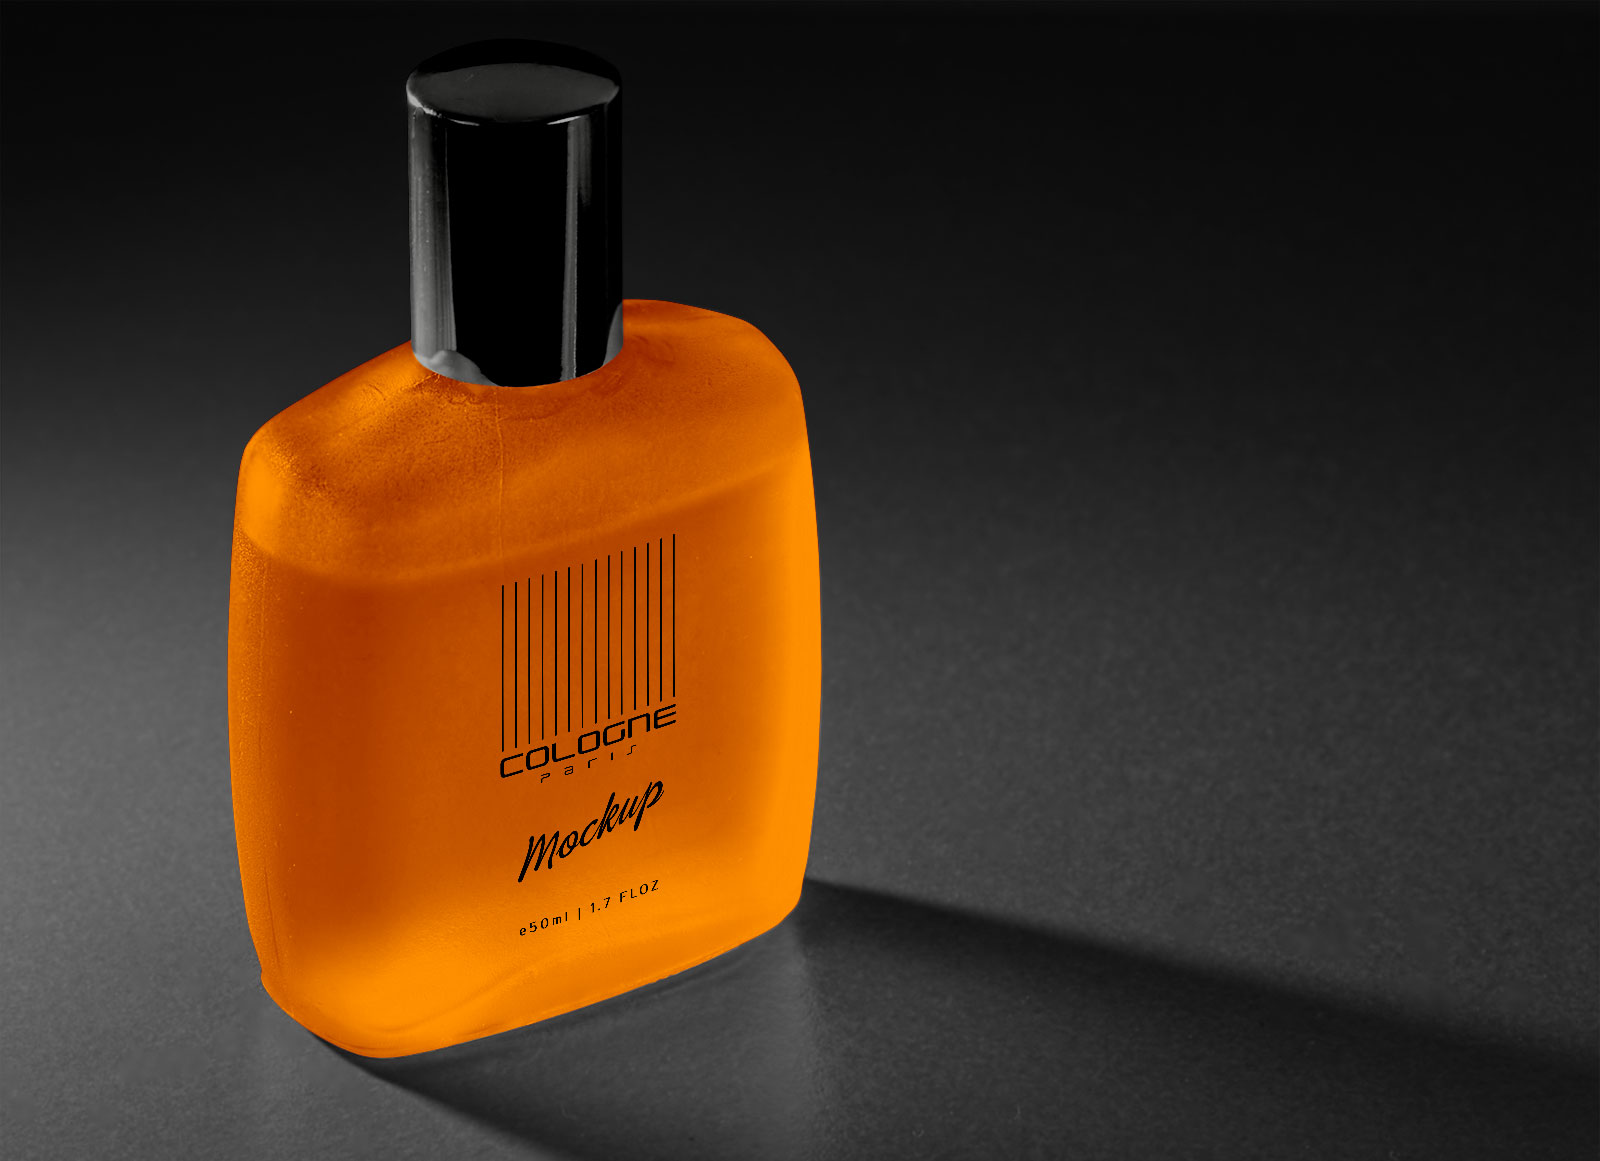 Free-Frosted-Perfume-Bottle-Mockup-PSD-File-4